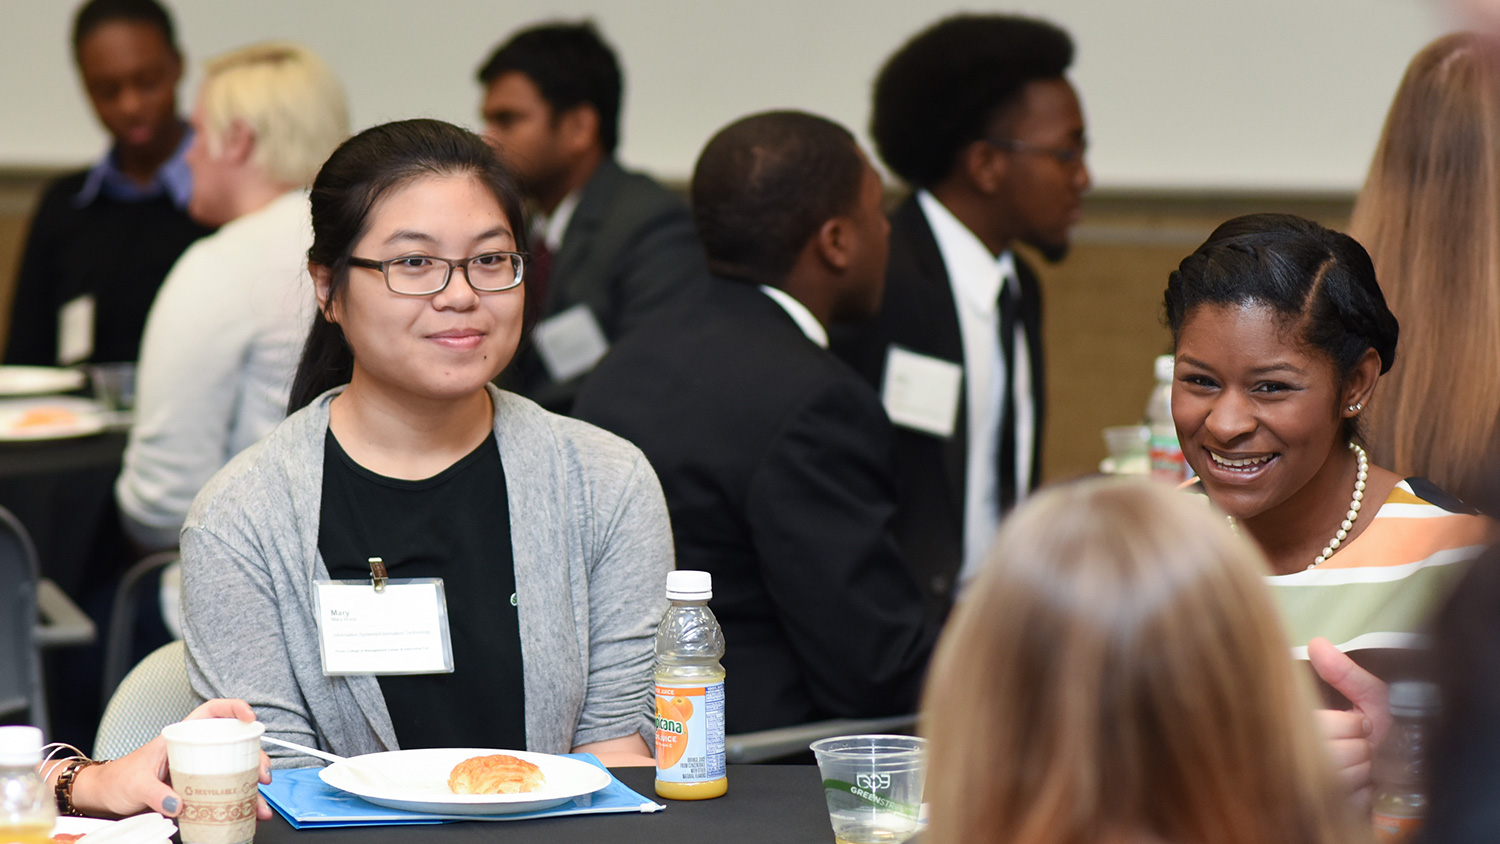 Students and recruiters discuss diversity and inclusion in the workplace at this breakfast meeting.